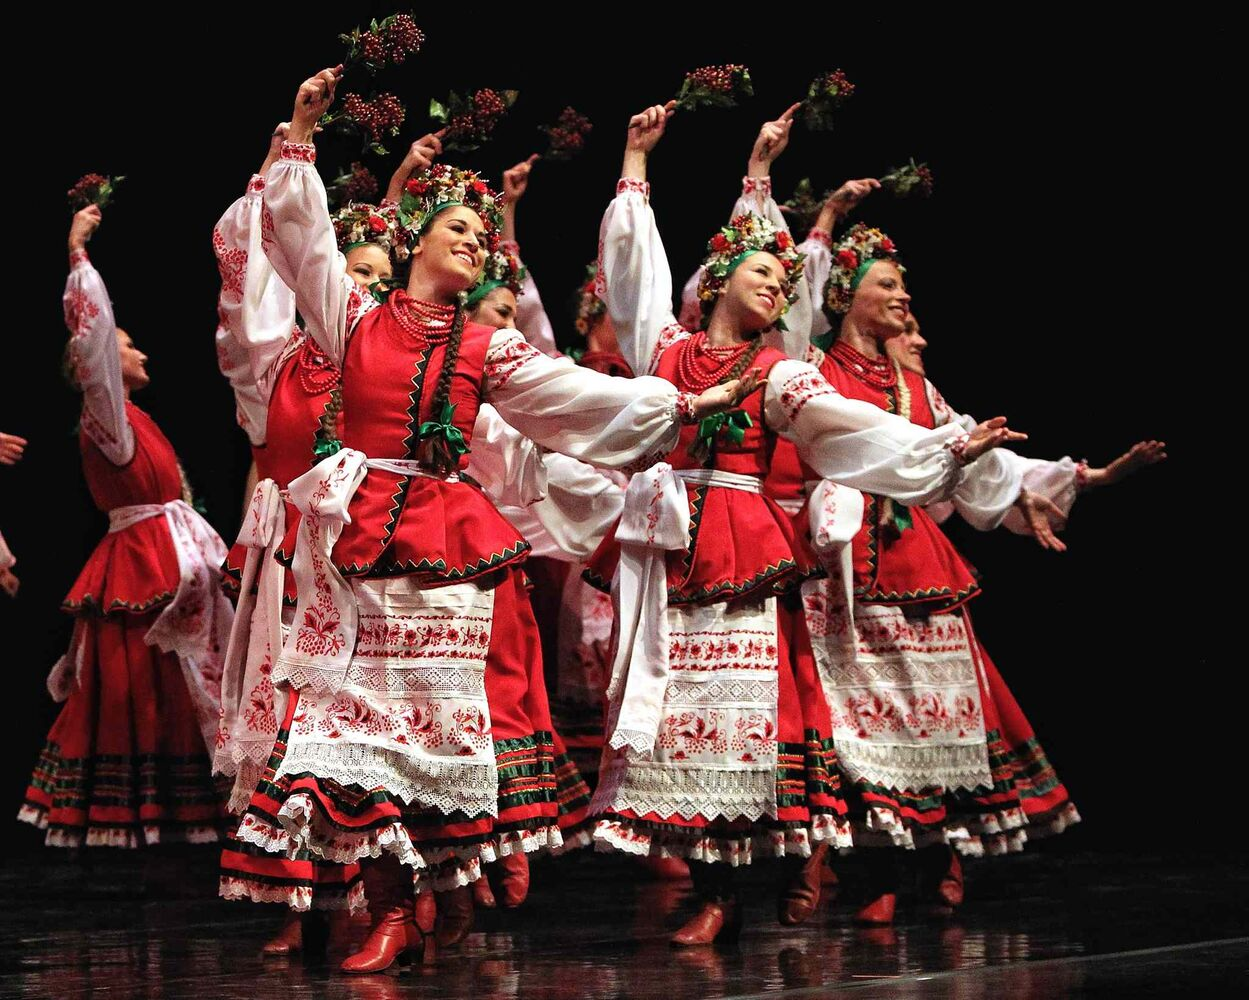 Members of the Rusalka Ukrainian dance troupe perform during their 50th anniversary gala at the Centennial Concert Hall Sunday afternoon. (MIKE DEAL / WINNIPEG FREE PRESS)